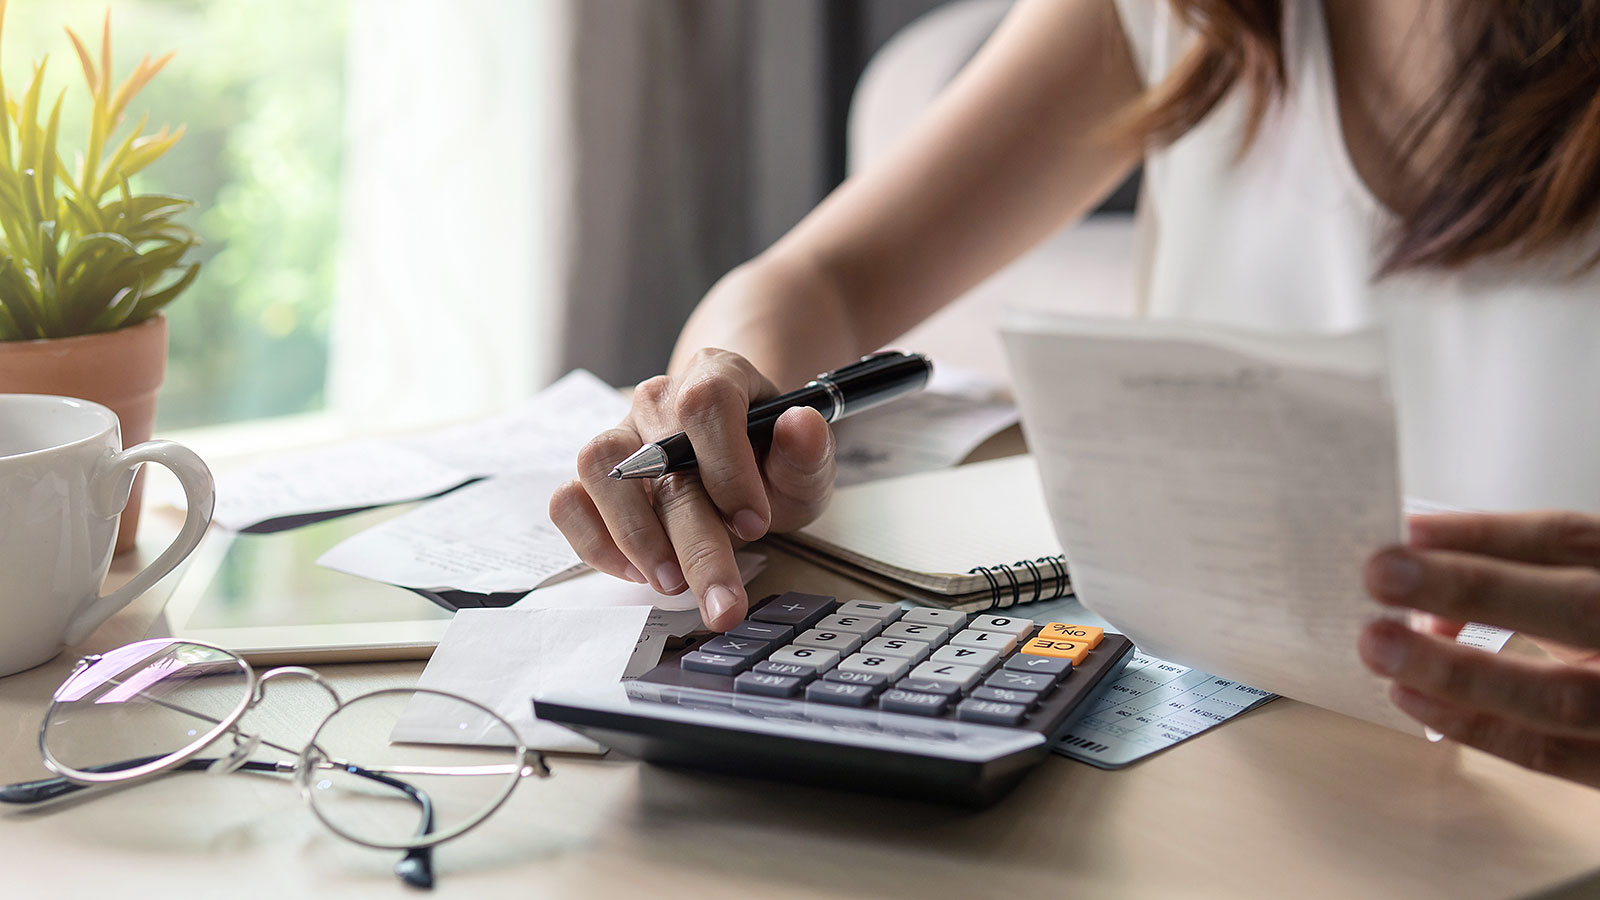 Types of budgeting: which one is right for you?